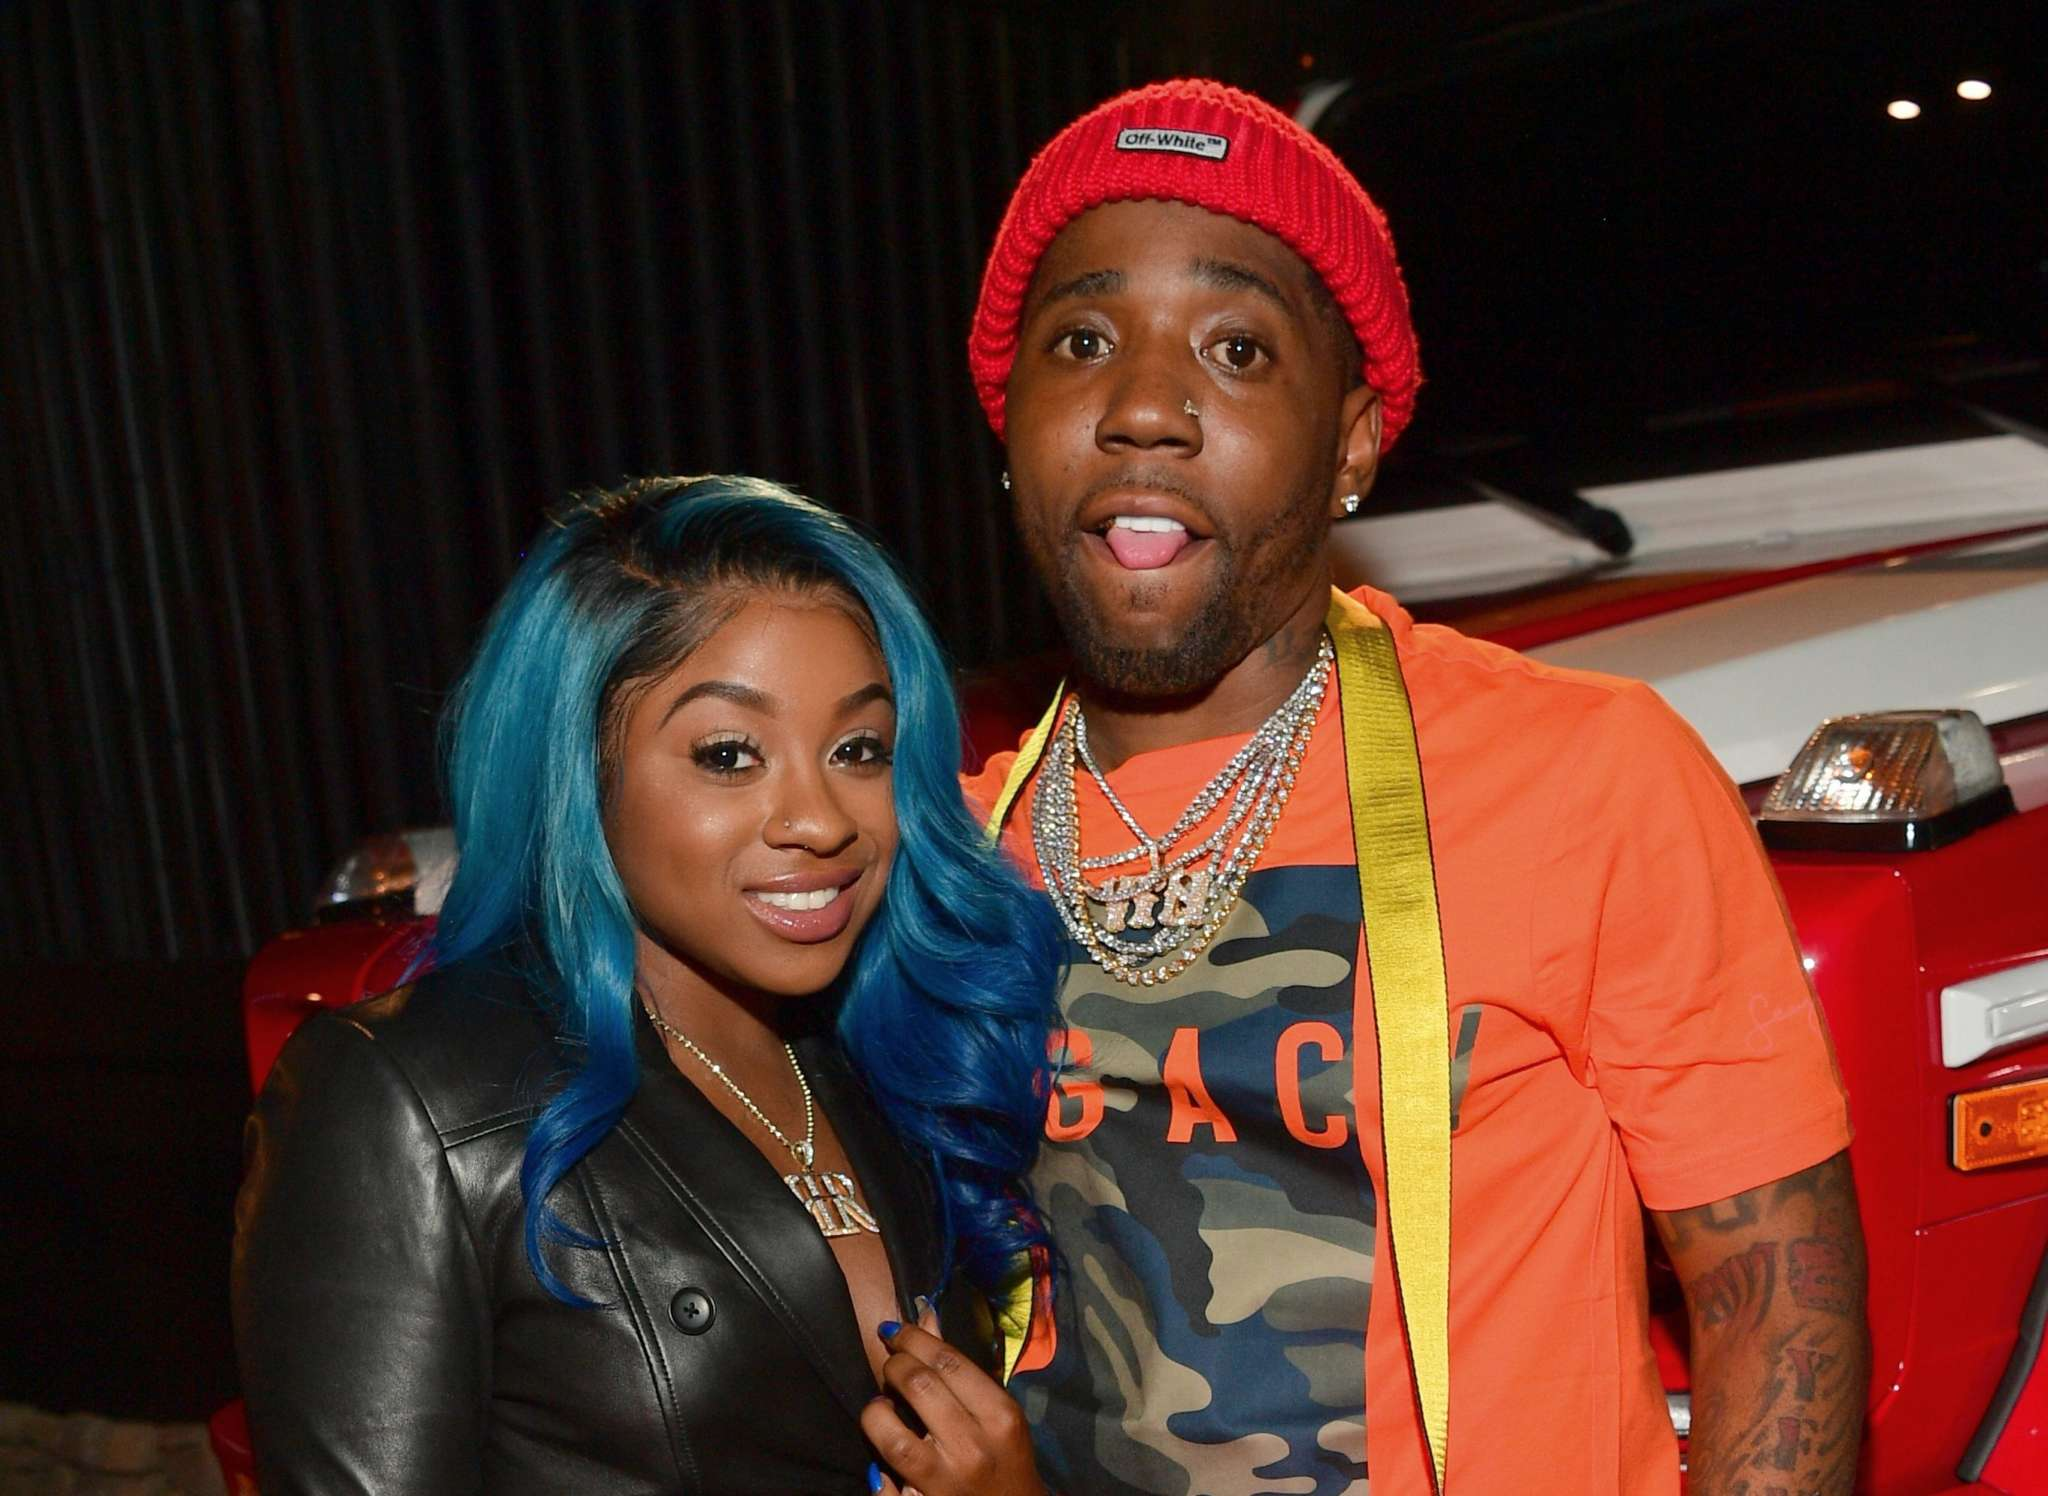 Reginae Carter's Fans Freak Out After YFN Lucci Reportedly Sends Her 5k Roses For Her Birthday: 'Please Don't Fall For It!' - See The Photos